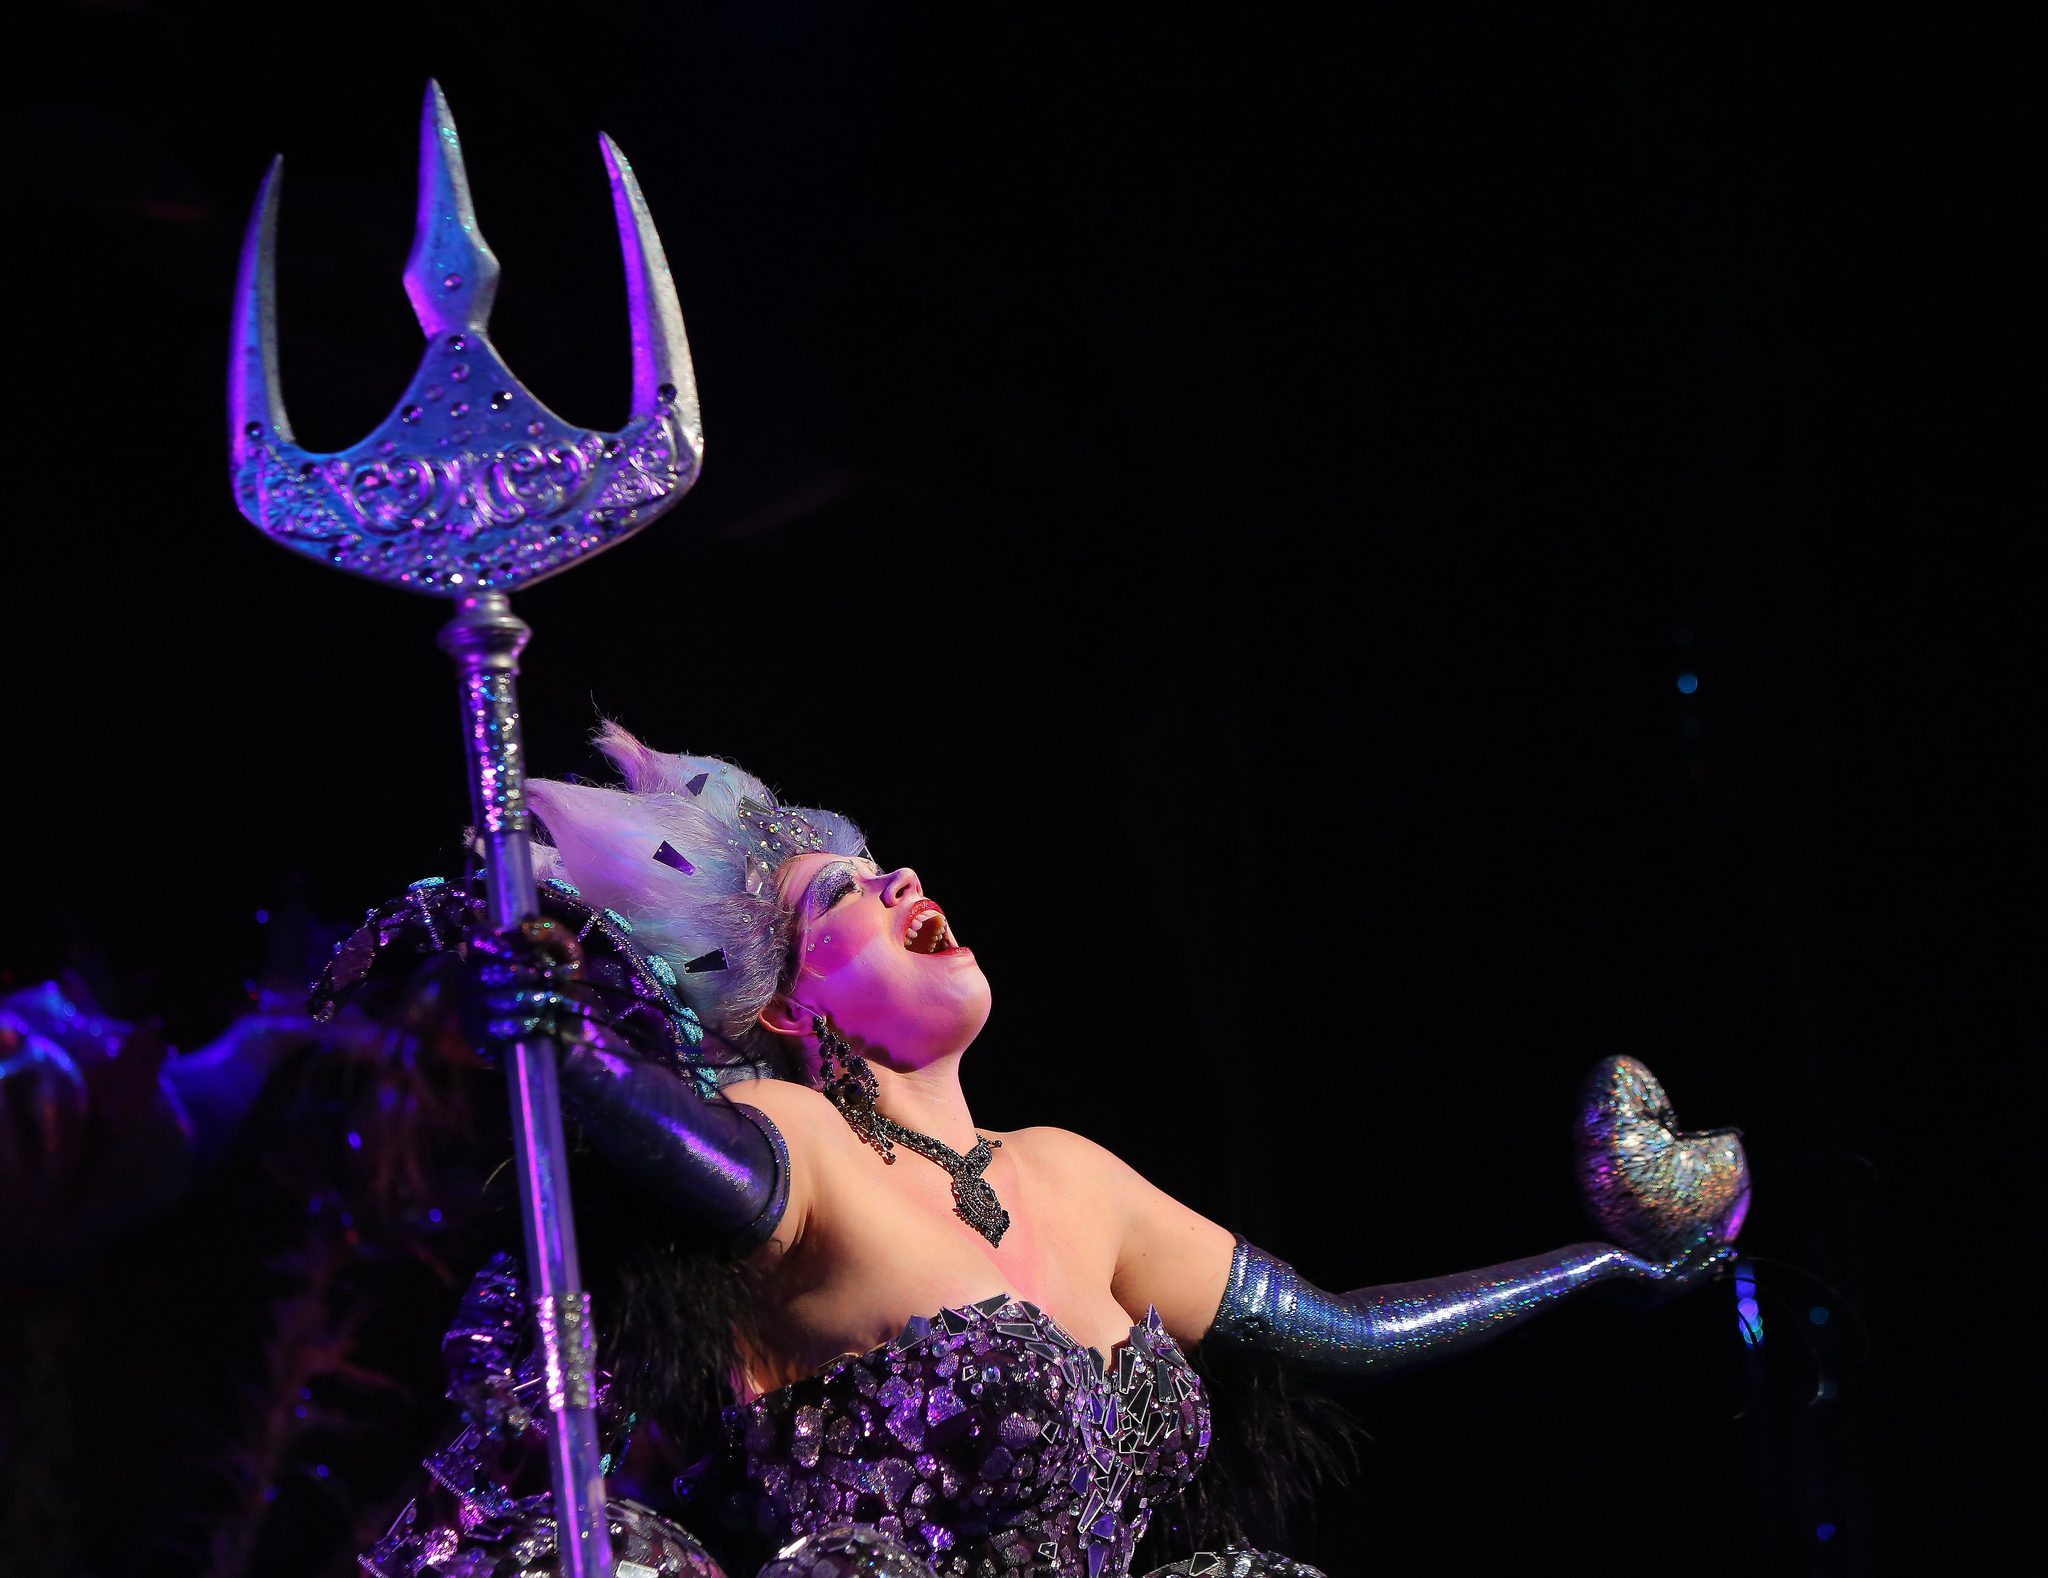 """""""The glittery embodiment of fantastical wickedness""""- Little Rock Soiree - Ursula in The Little Mermaid at Arkansas Repertory Theatre"""